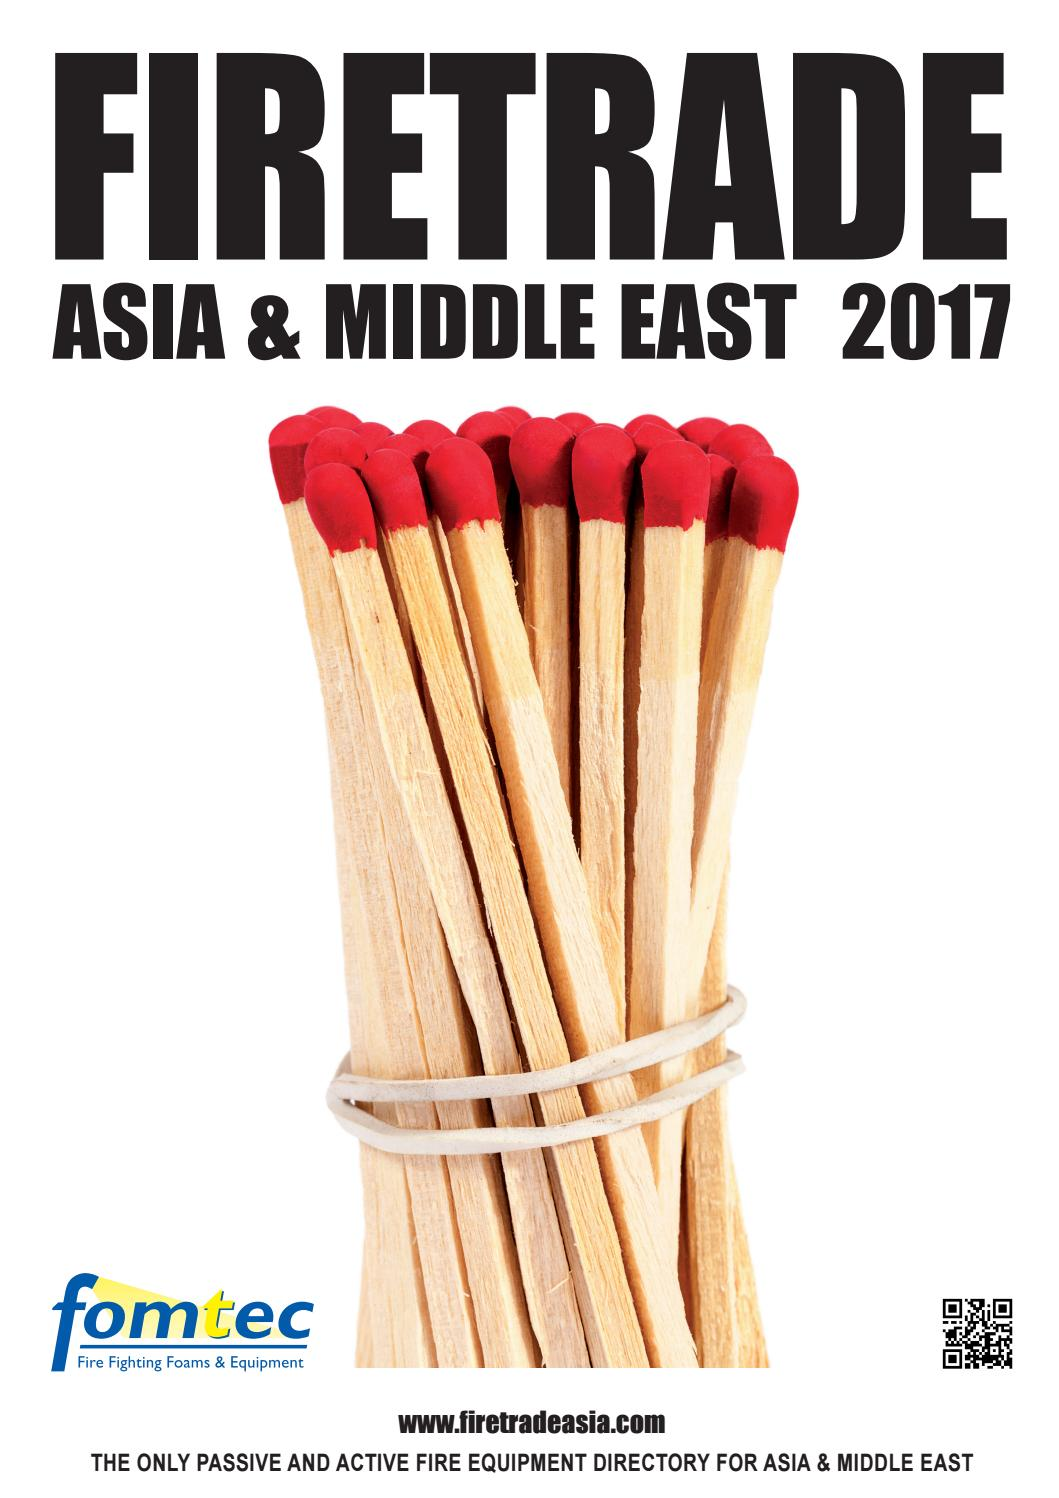 Firetrade Asia & Middle East 2017 by Hemming Group - issuu